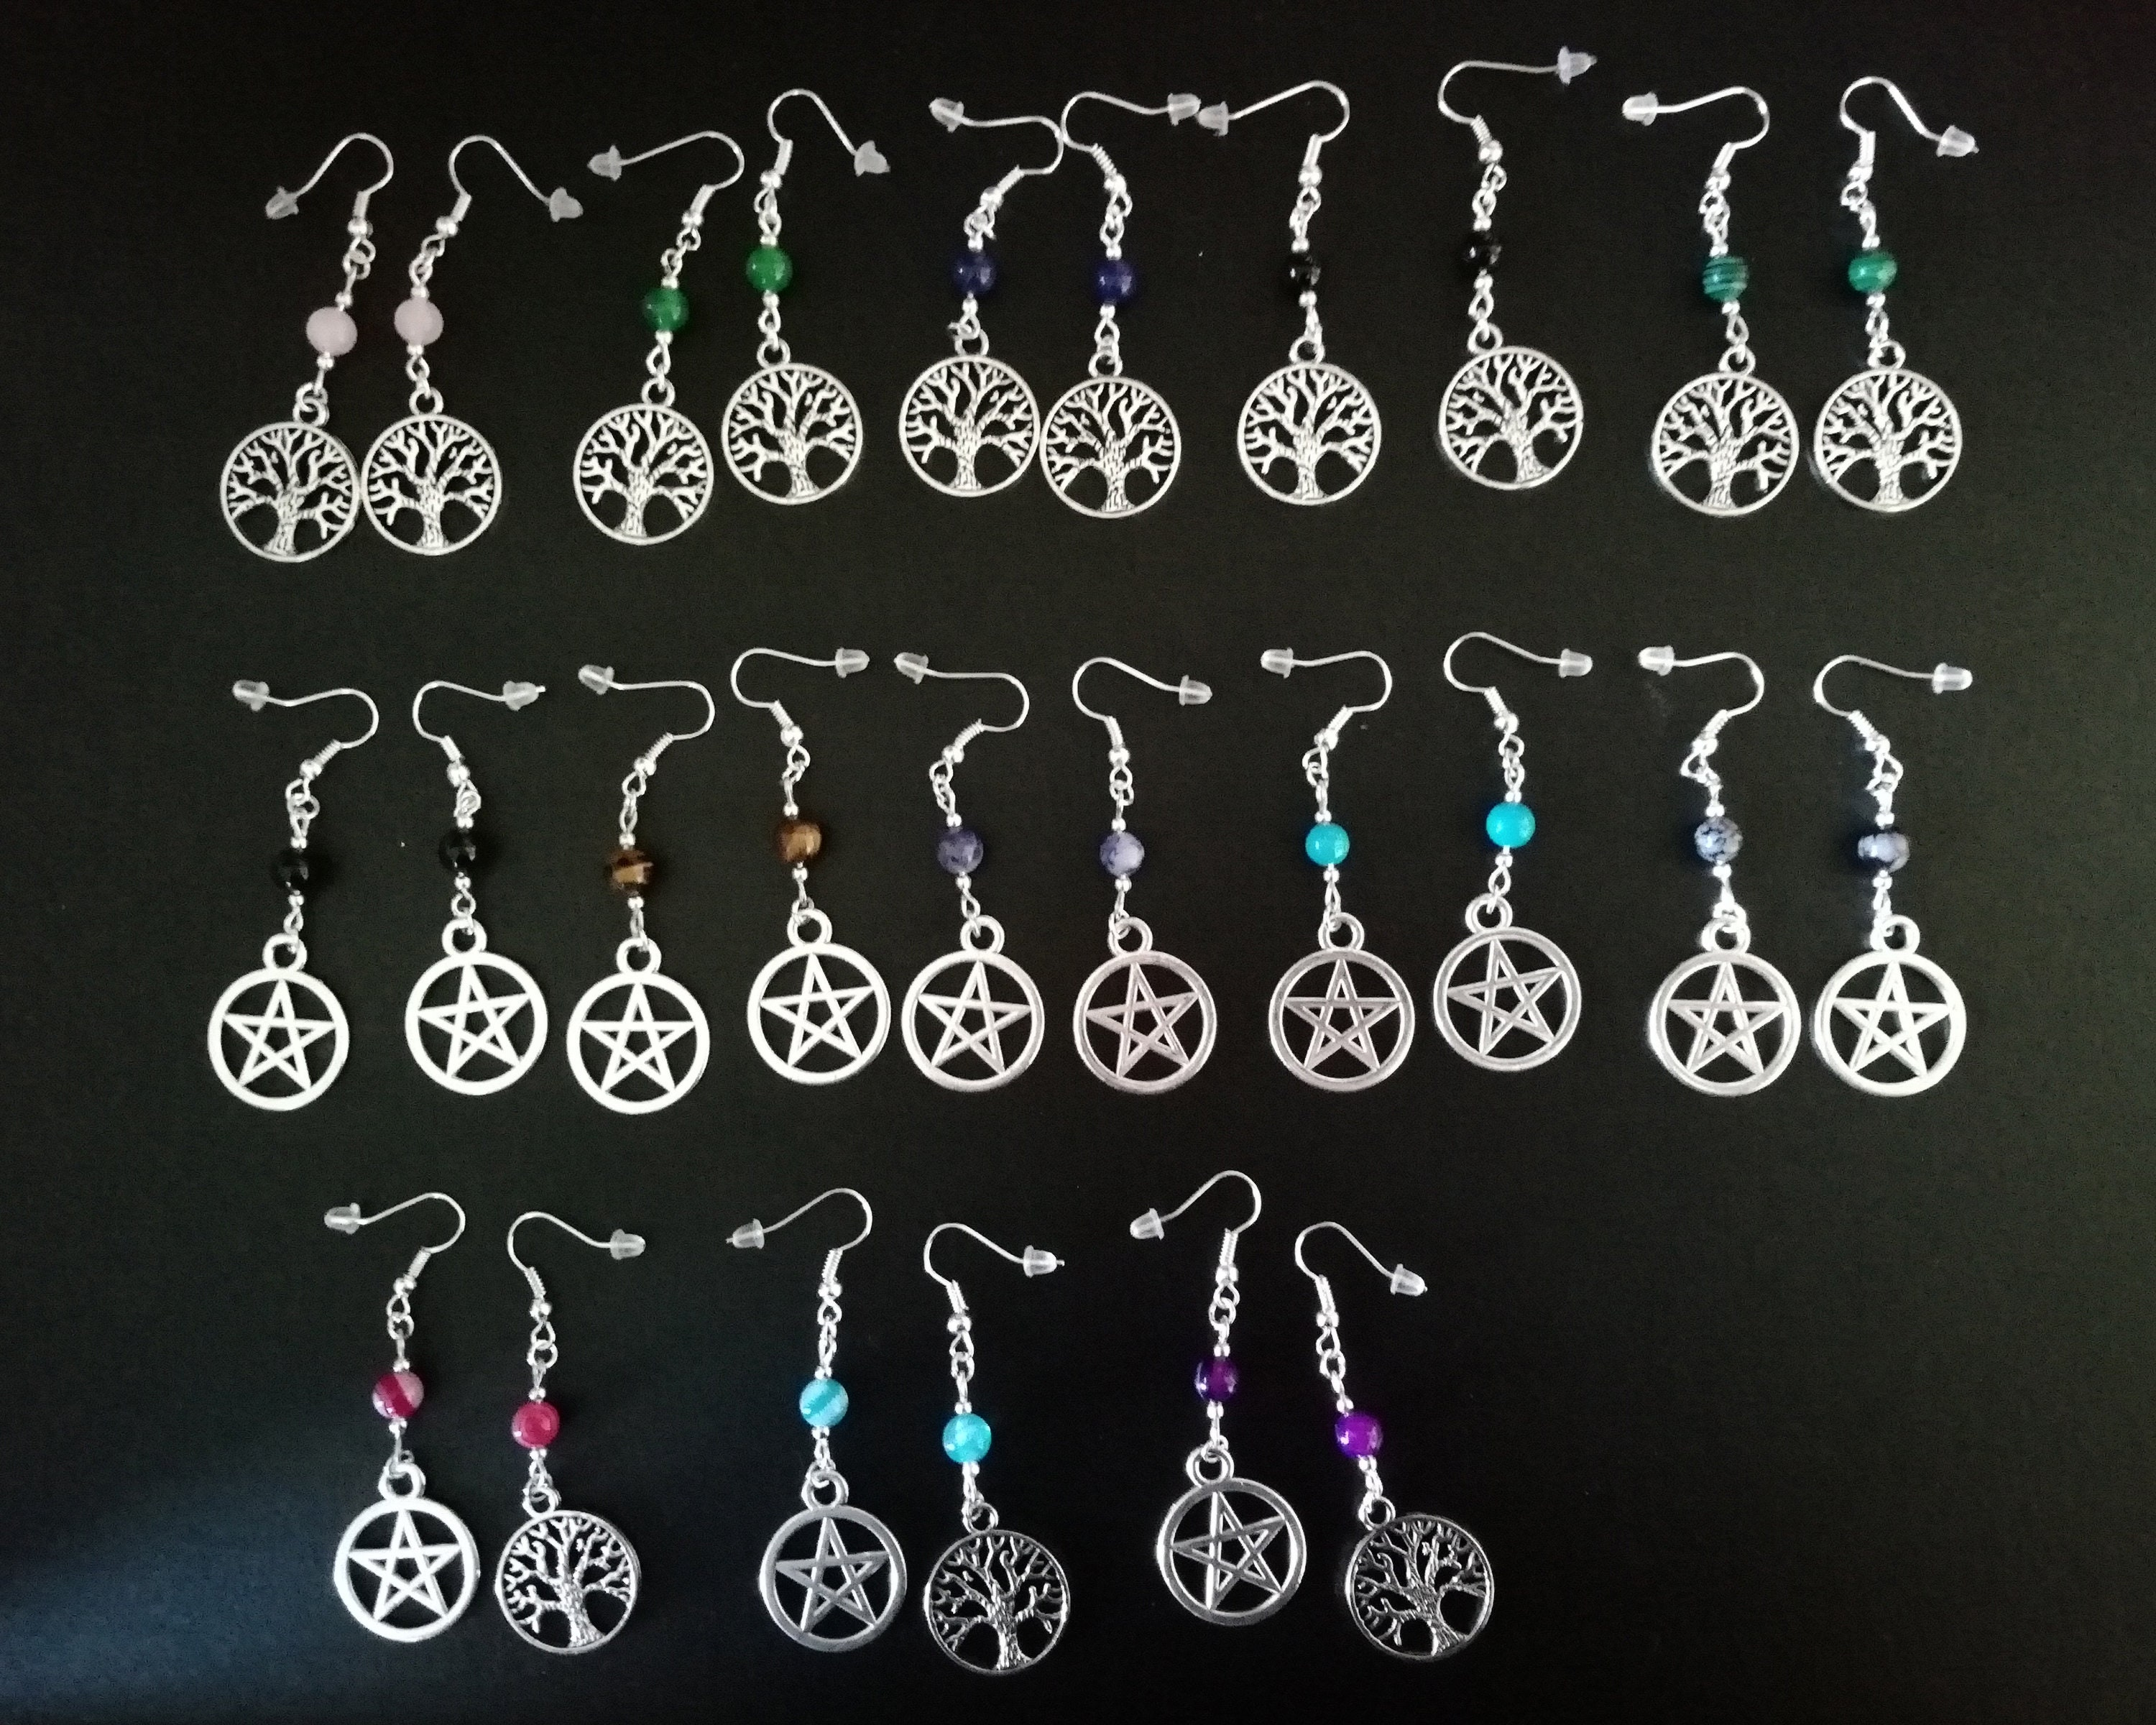 Tarot Card pagan wicca charms for crafts or jewellery making x 5 tibetan silver